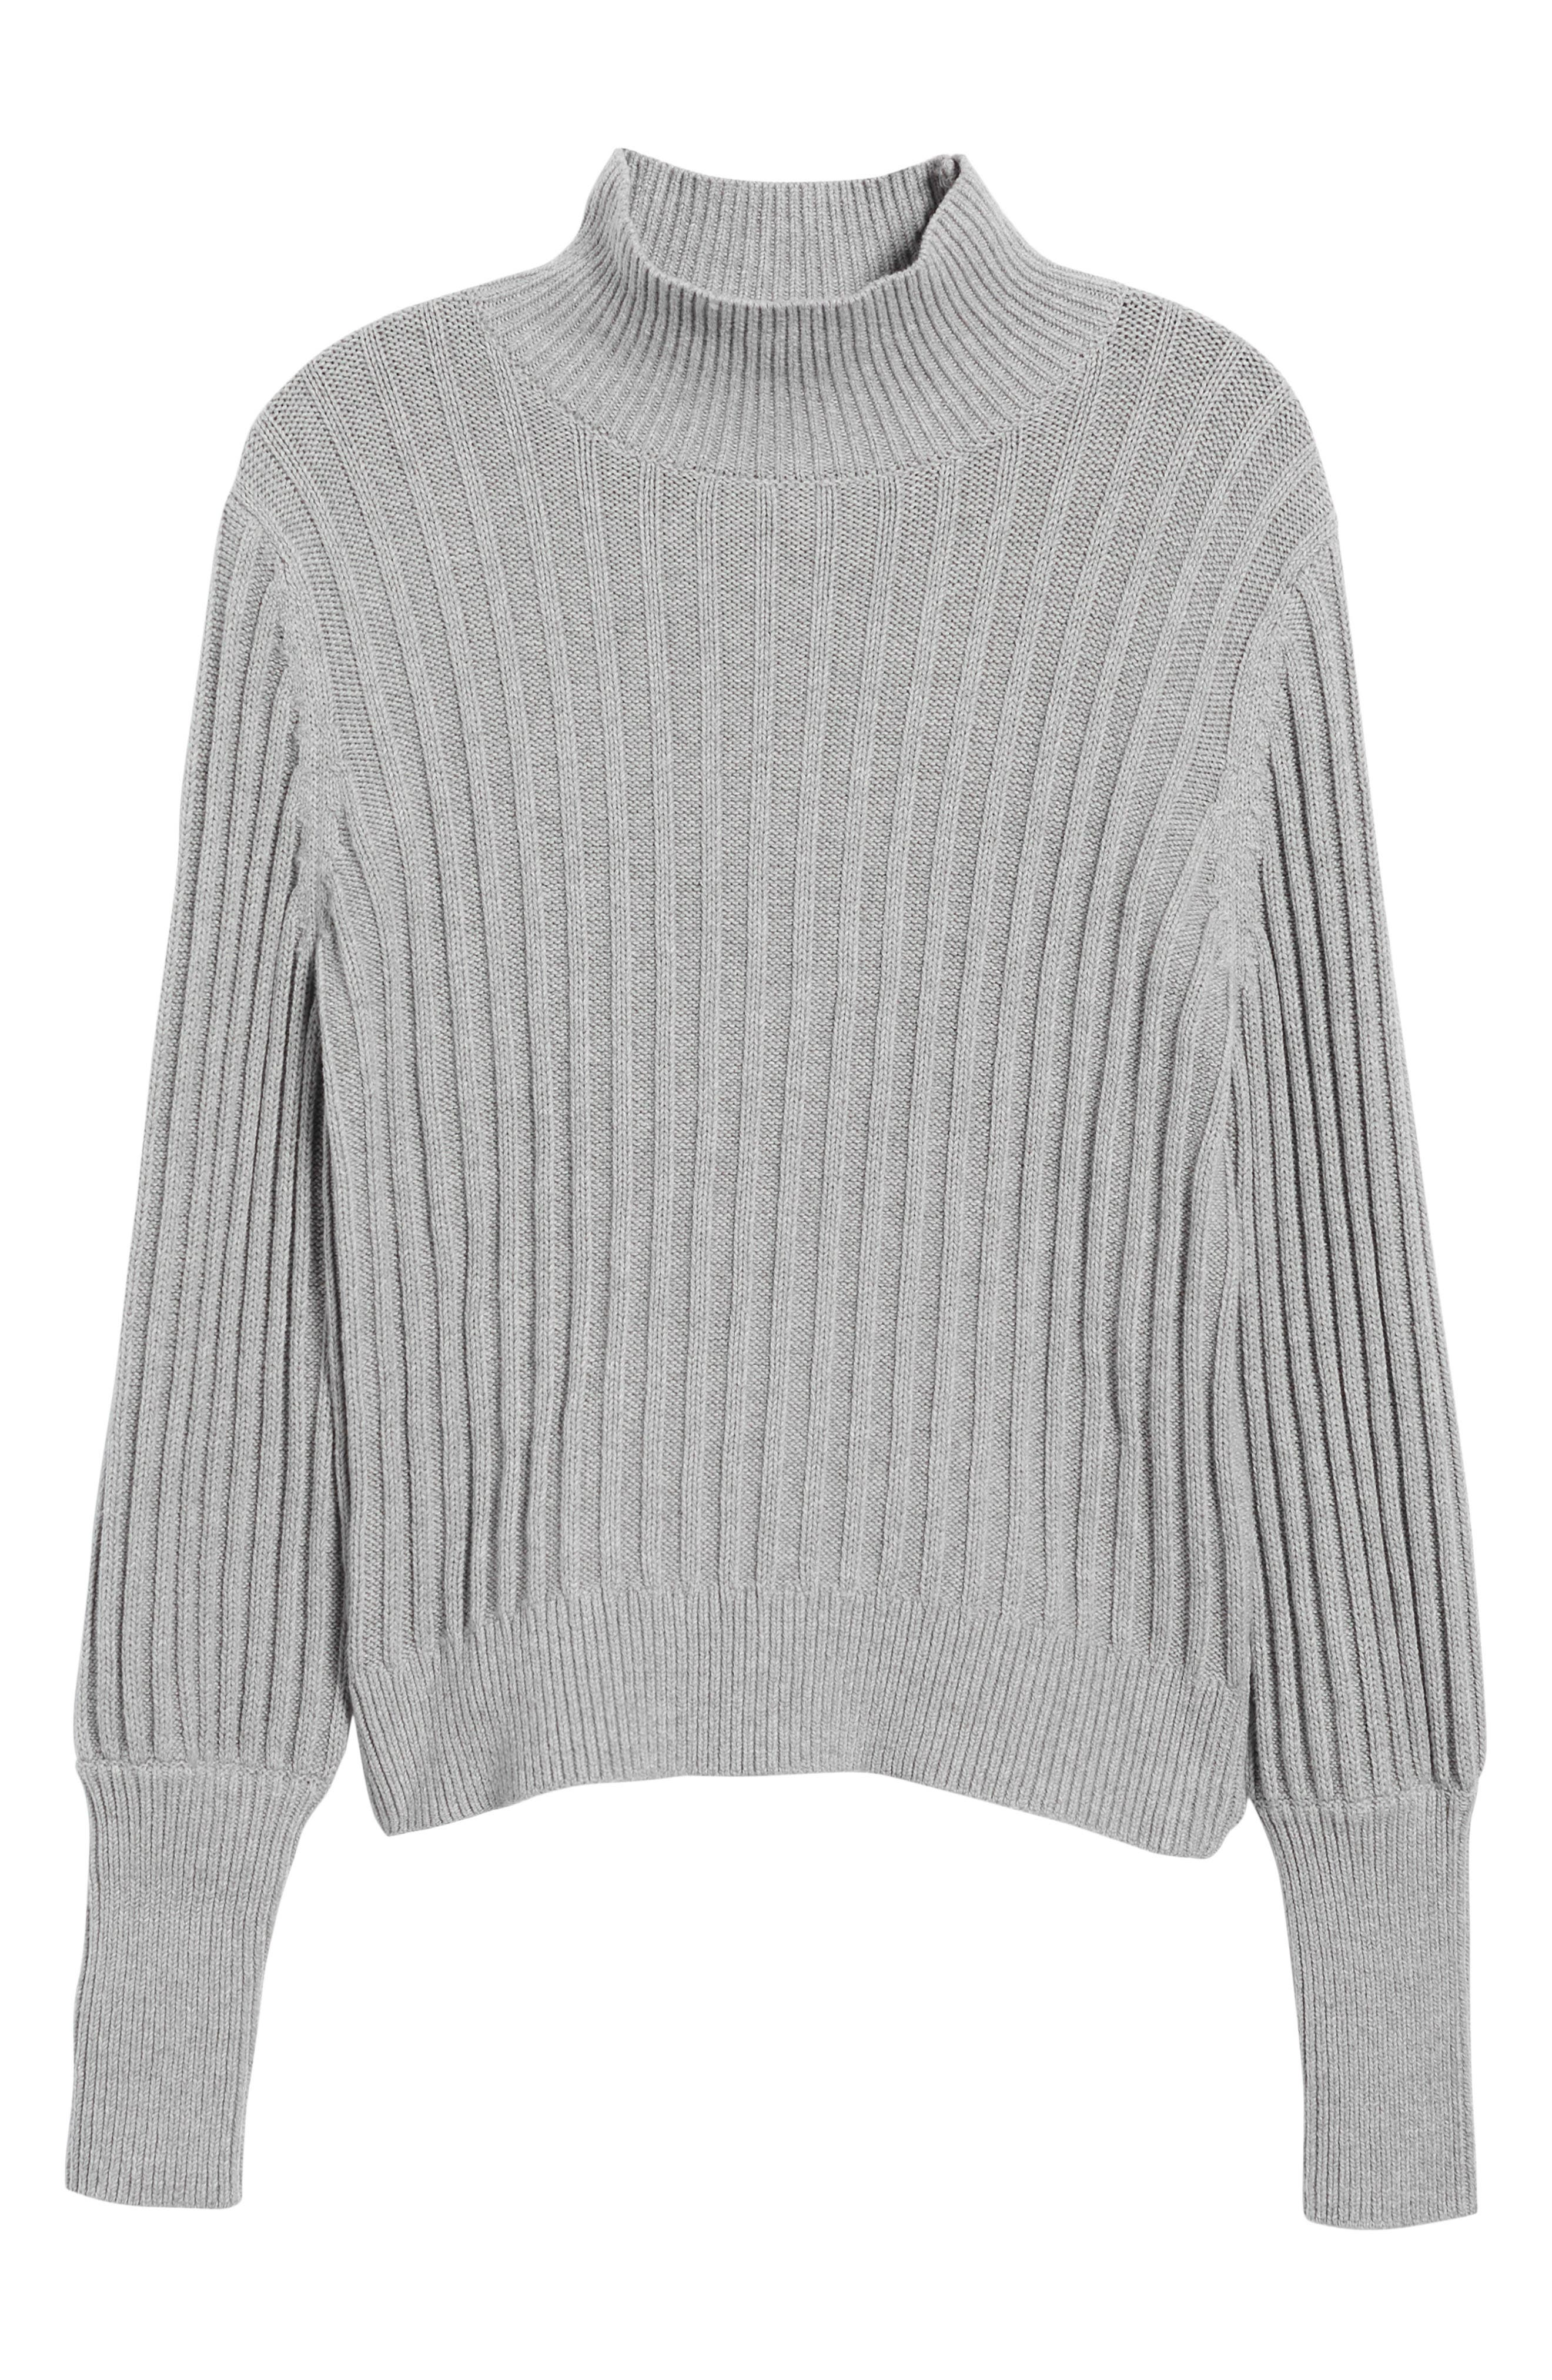 Galactic Puff Sleeve Sweater,                             Alternate thumbnail 6, color,                             051